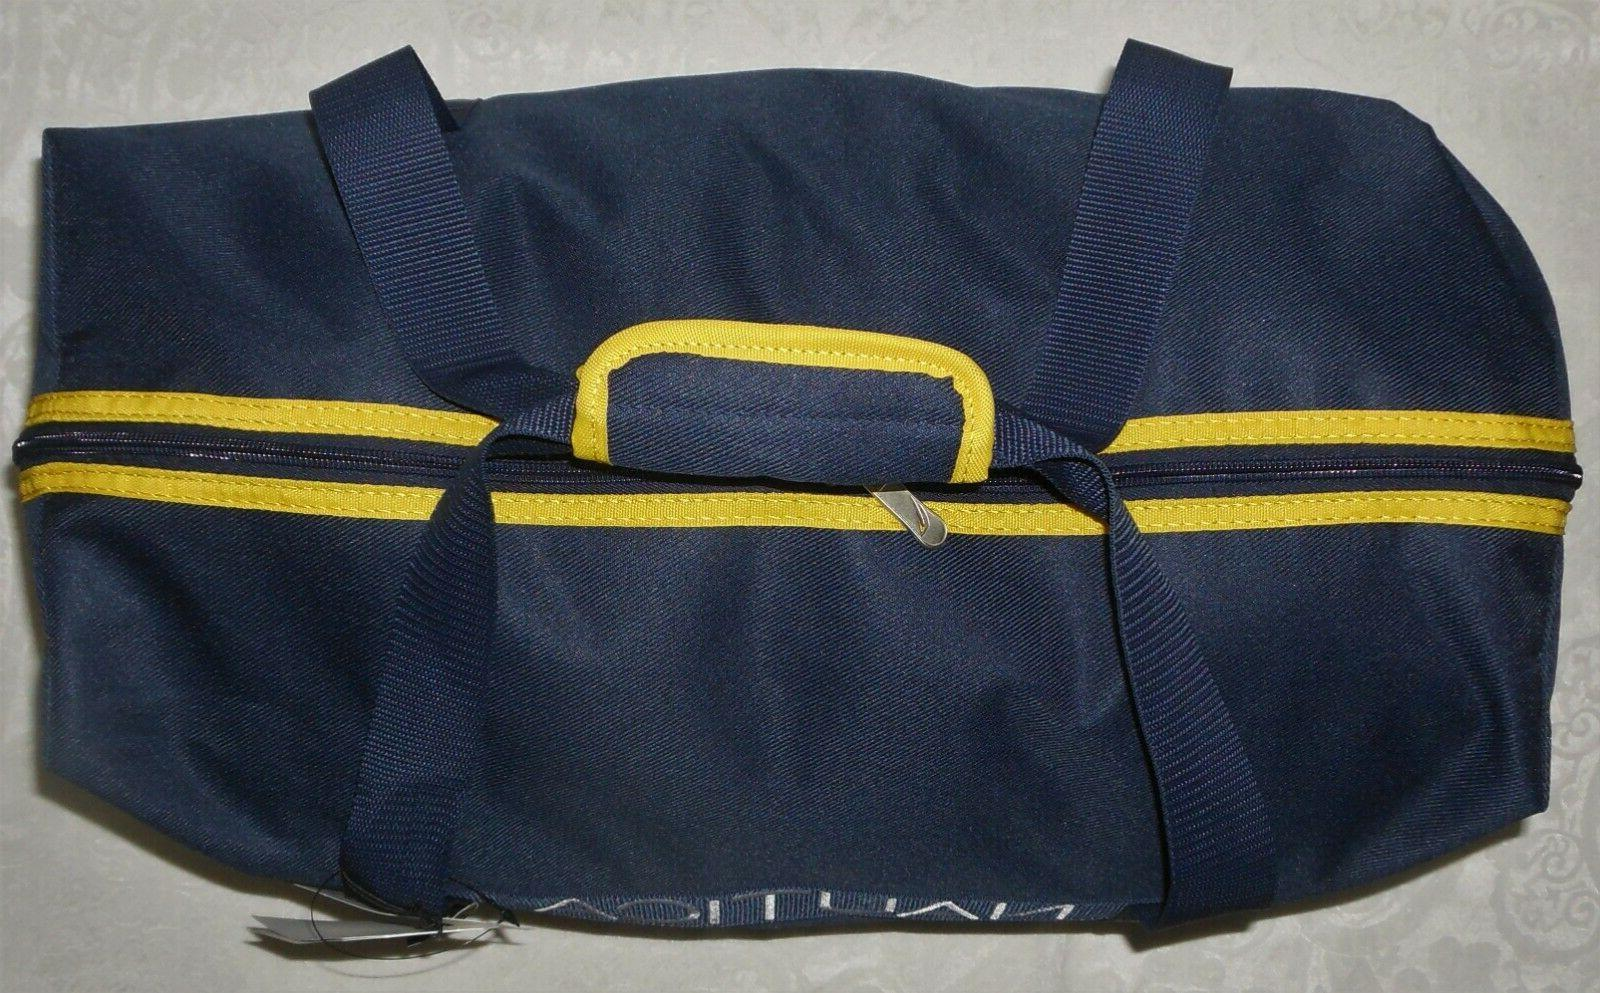 "Nautica 22"" Travel Gym Bag Luggage $120 FREE SHIPPING!"